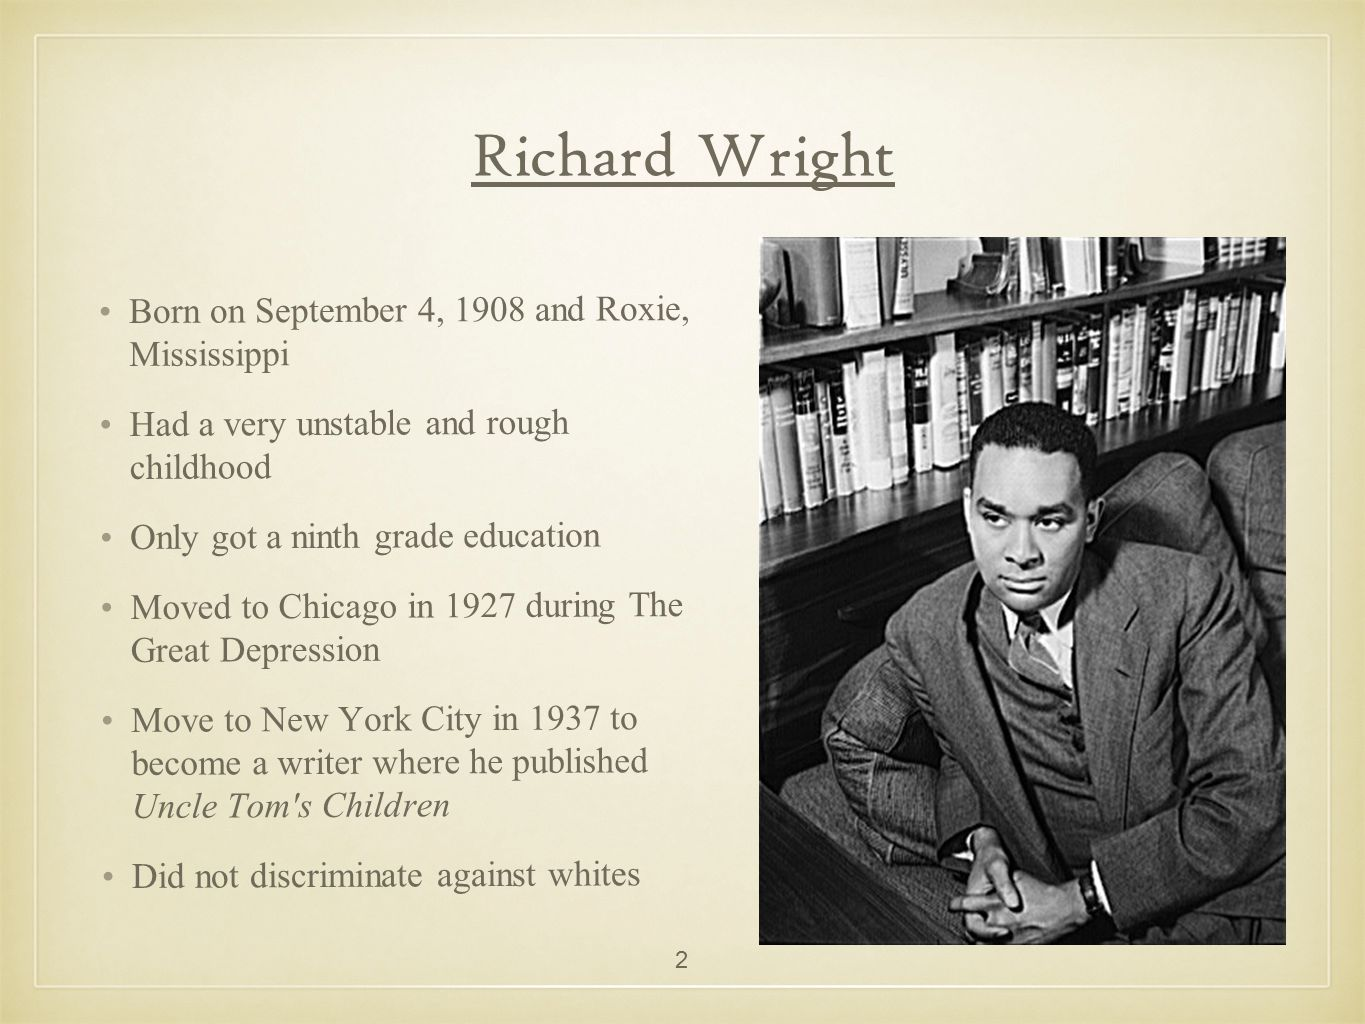 Richard Wright Born on September 4, 1908 and Roxie, Mississippi